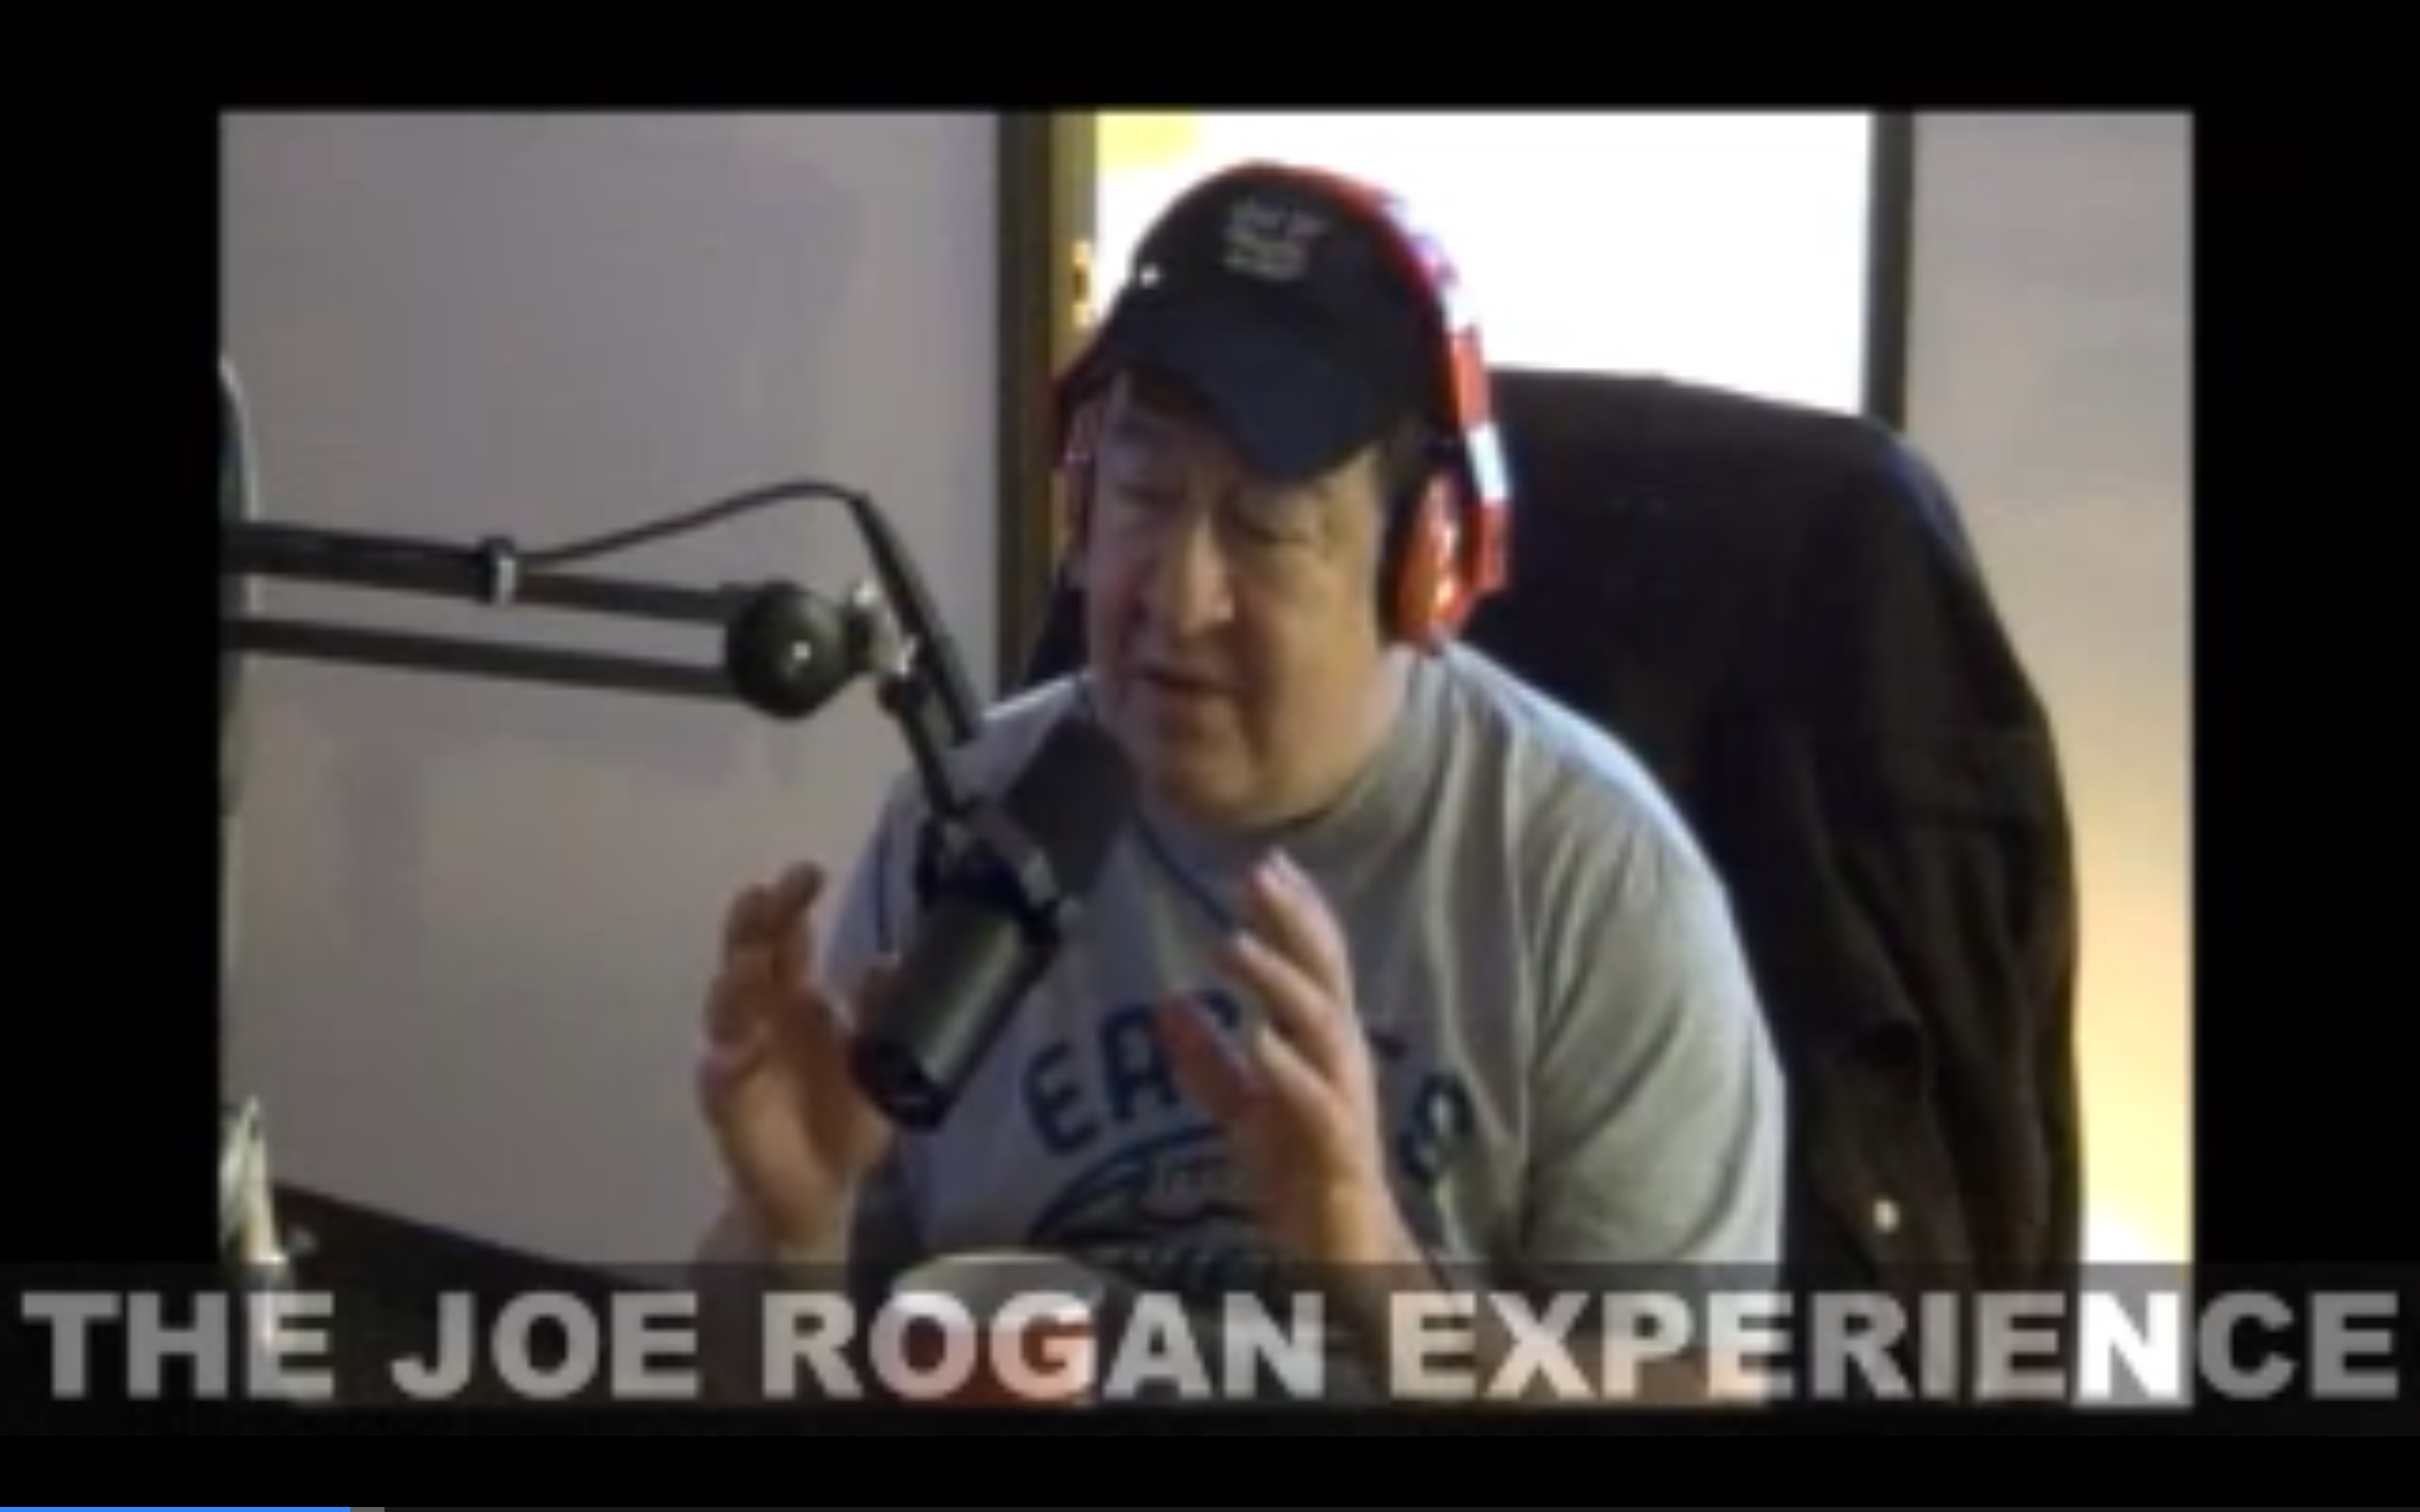 The Joe Rogan Experience #297 - Dom Irrera, Brian Redban